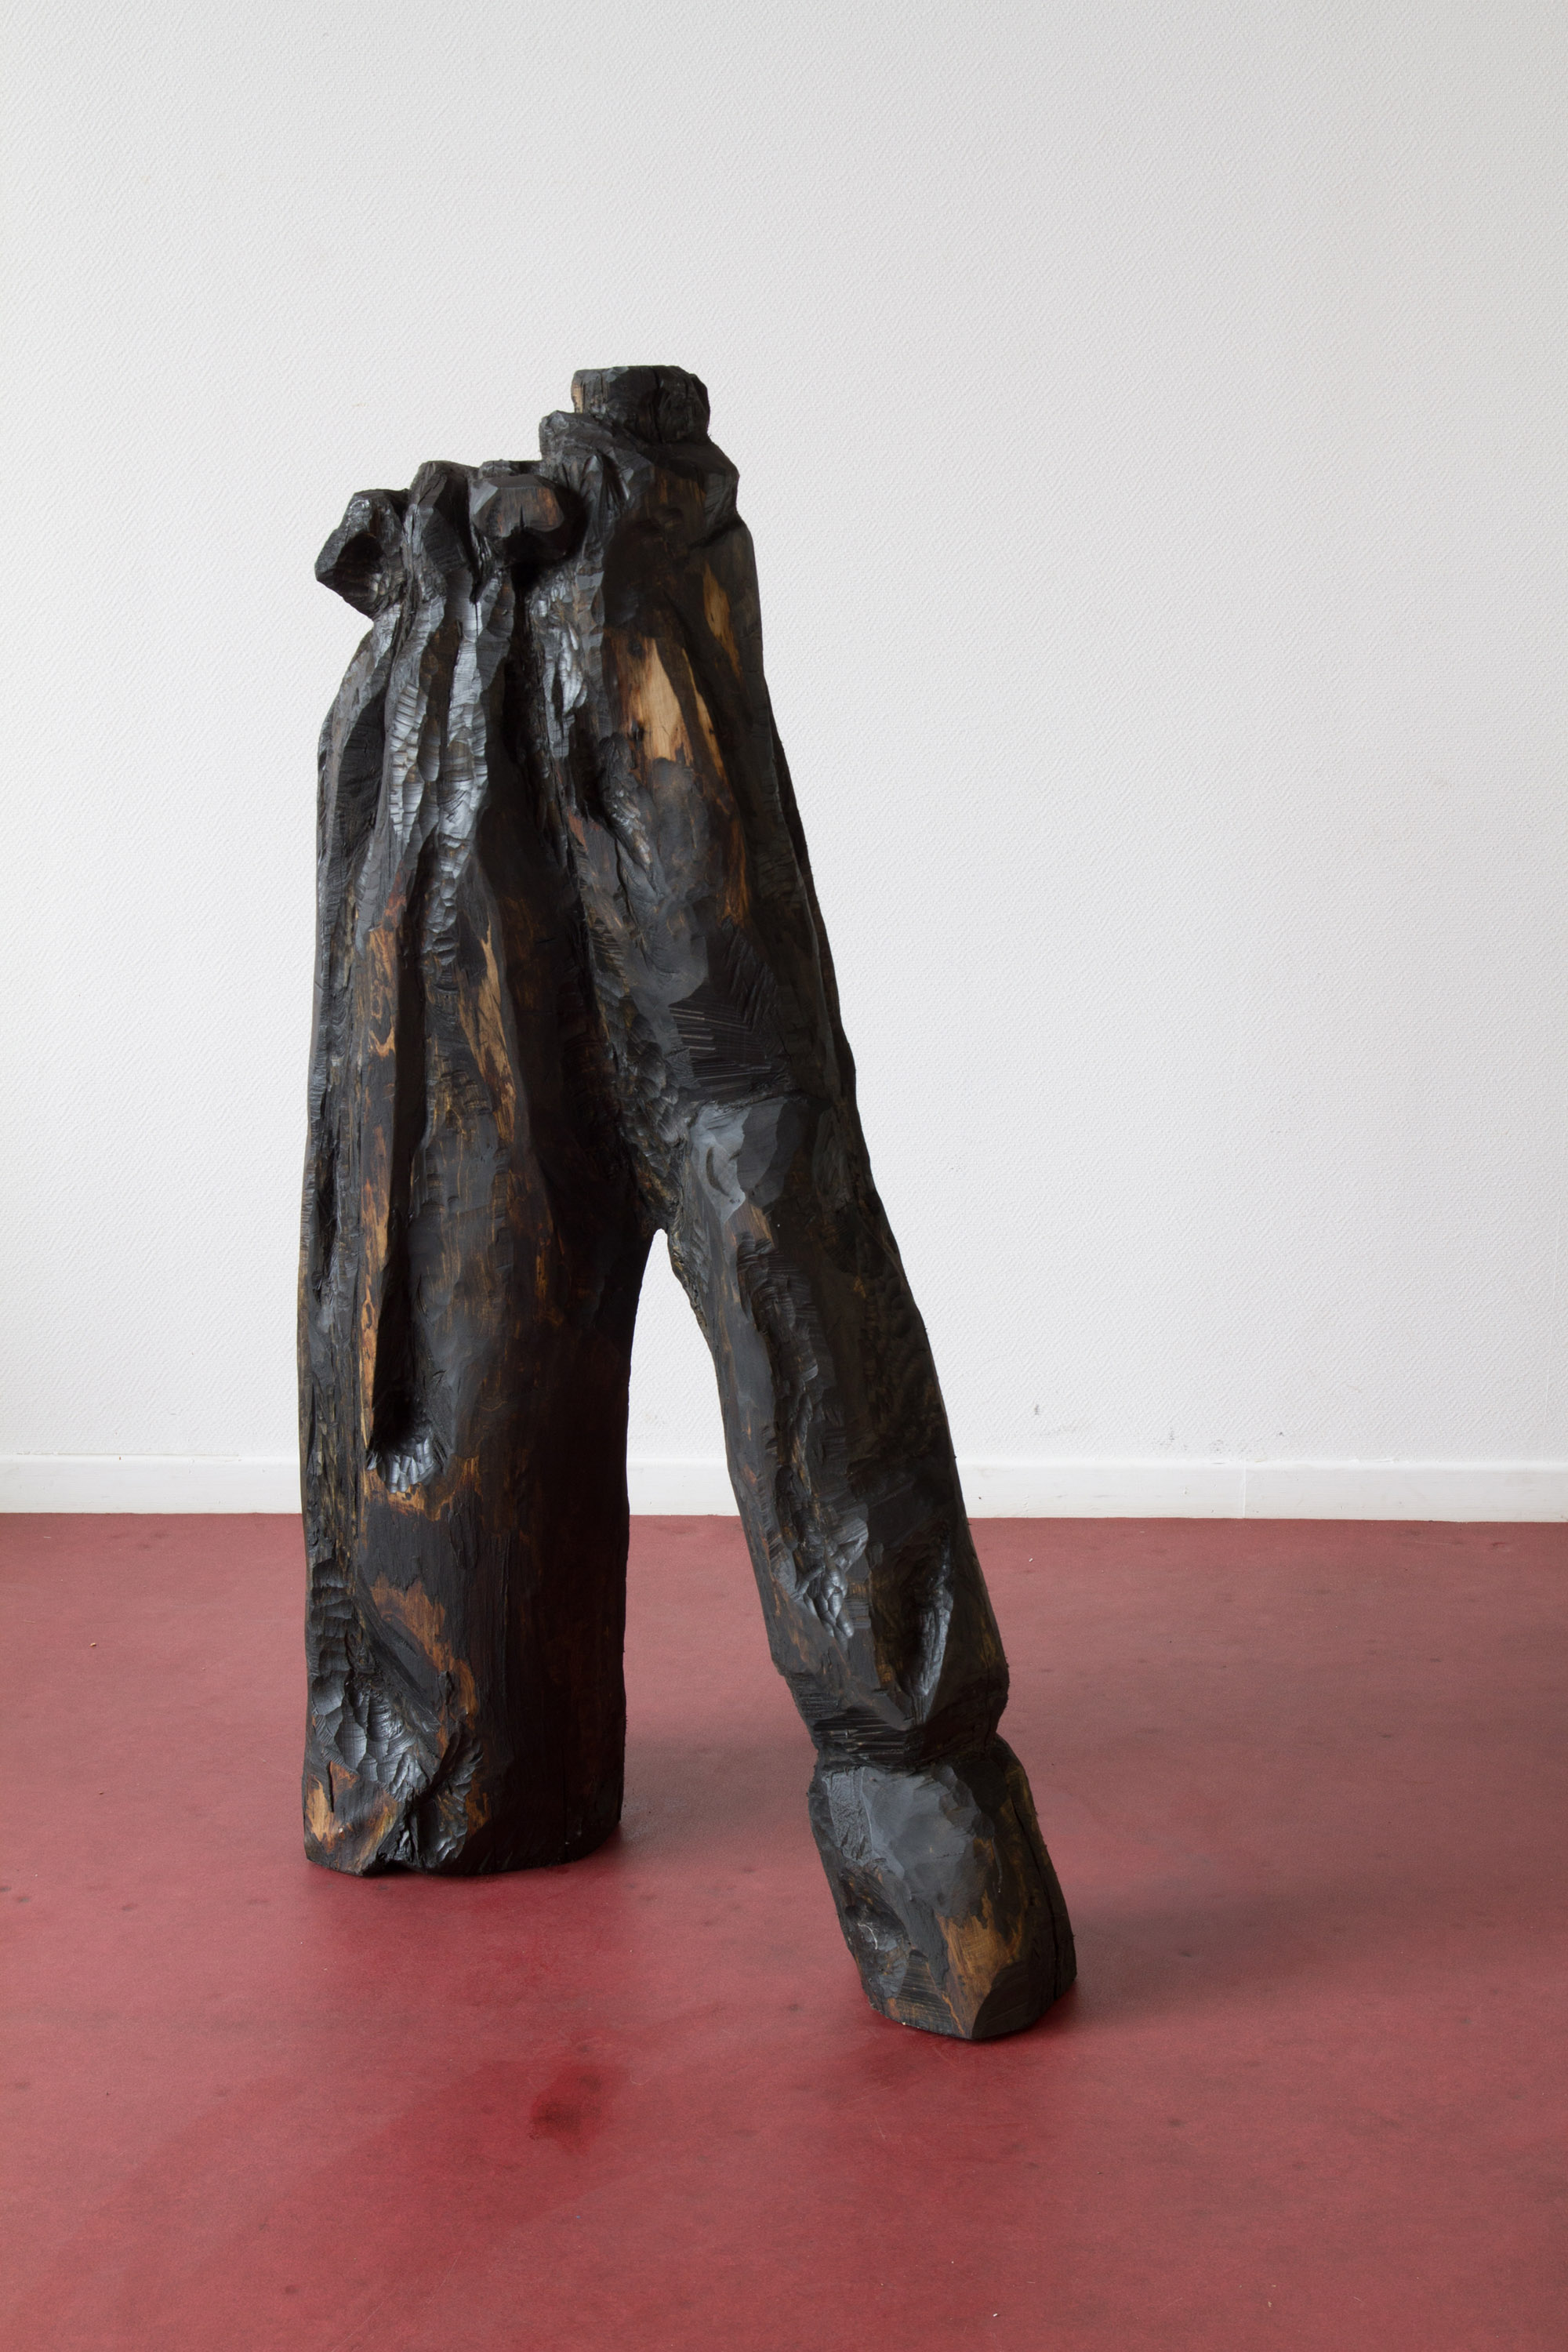 Refuse V (Ordures V), 2016, hand-carved sculpture, found Linden wood and used motor oil patina, 40 cm x 1m 20 x 1m. $5000